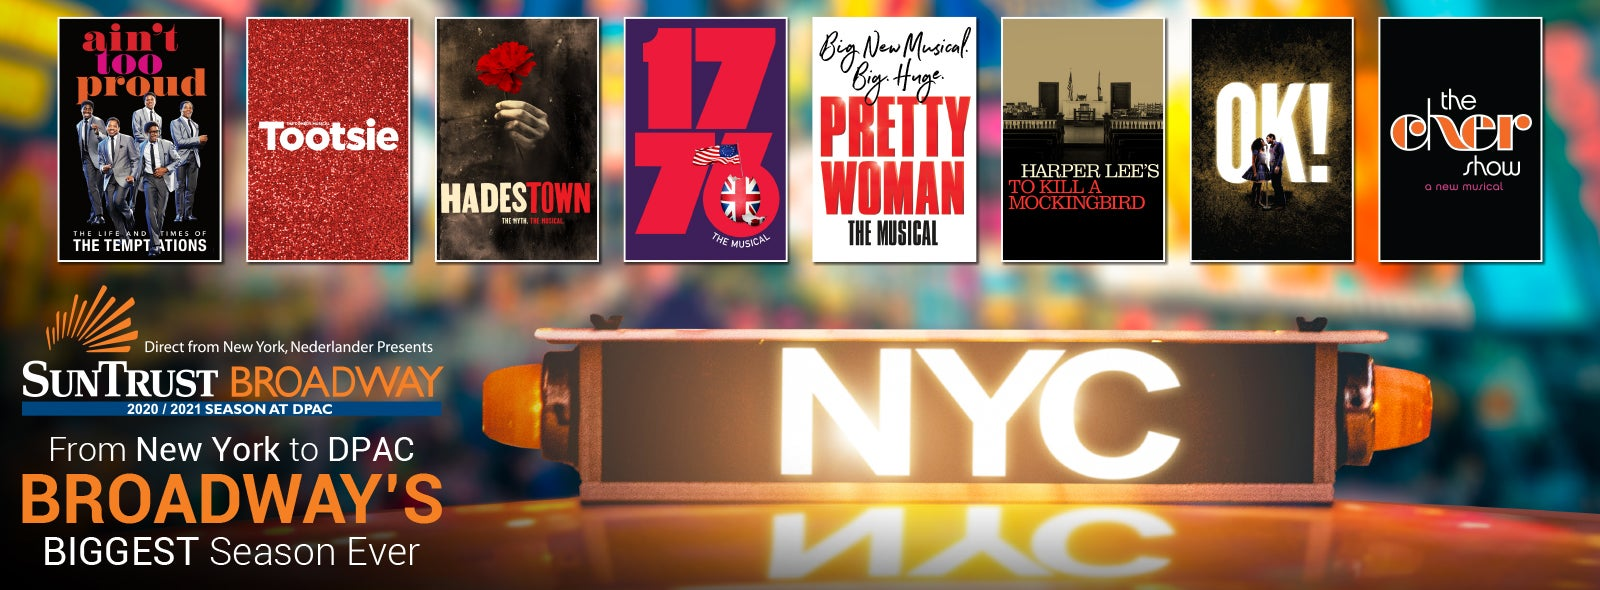 More Info for Direct from New York, Nederlander Presents SunTrust Broadway's 2020/2021 Season at DPAC